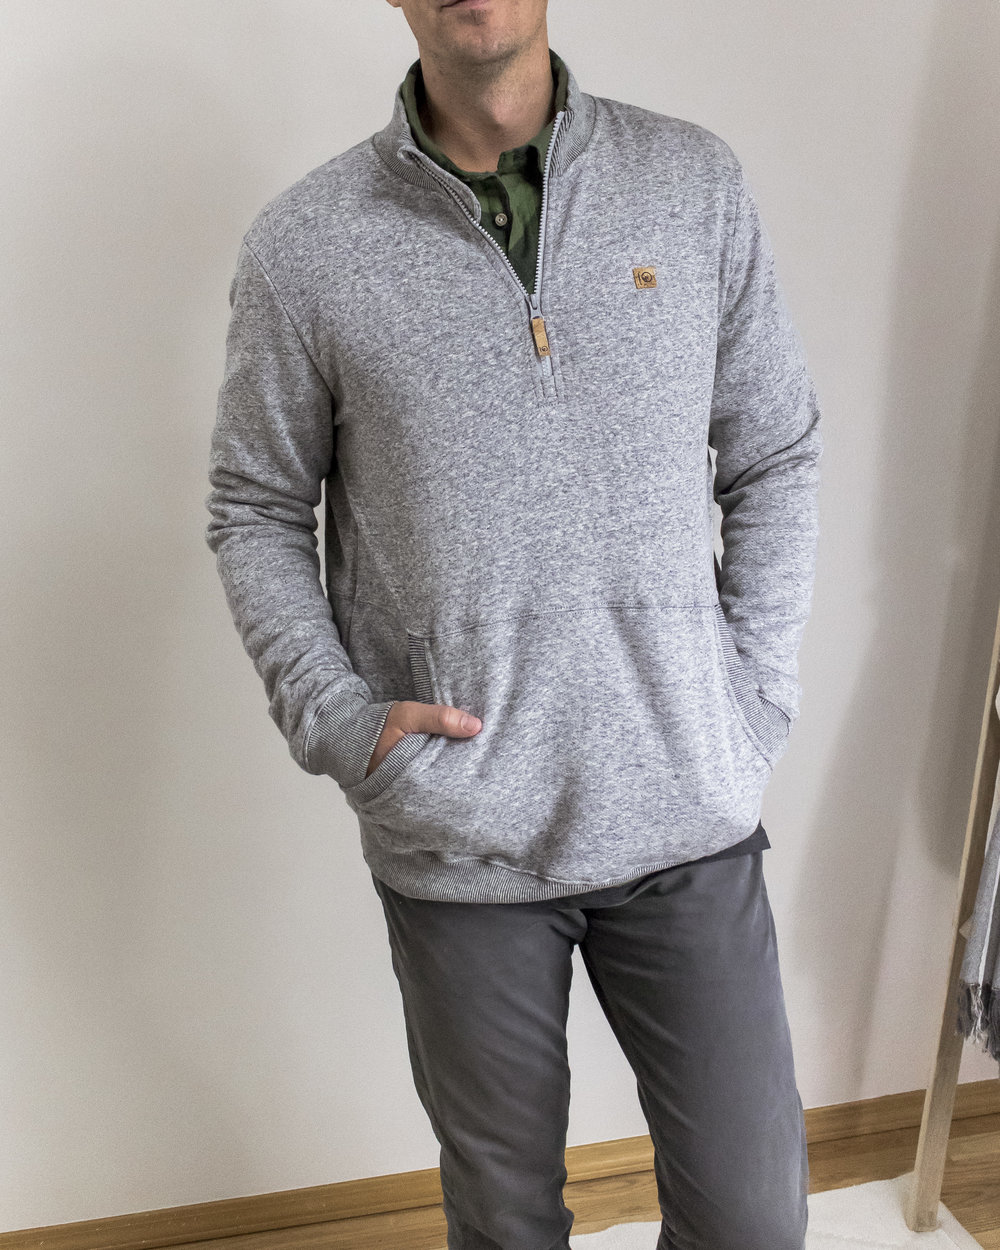 you'll always be prepared for spontaneous adventures with the HALF ZIP SWEATER. this cotton and hemp blend sweatshirt is heavyweight but breathable, plus uv resistant! -